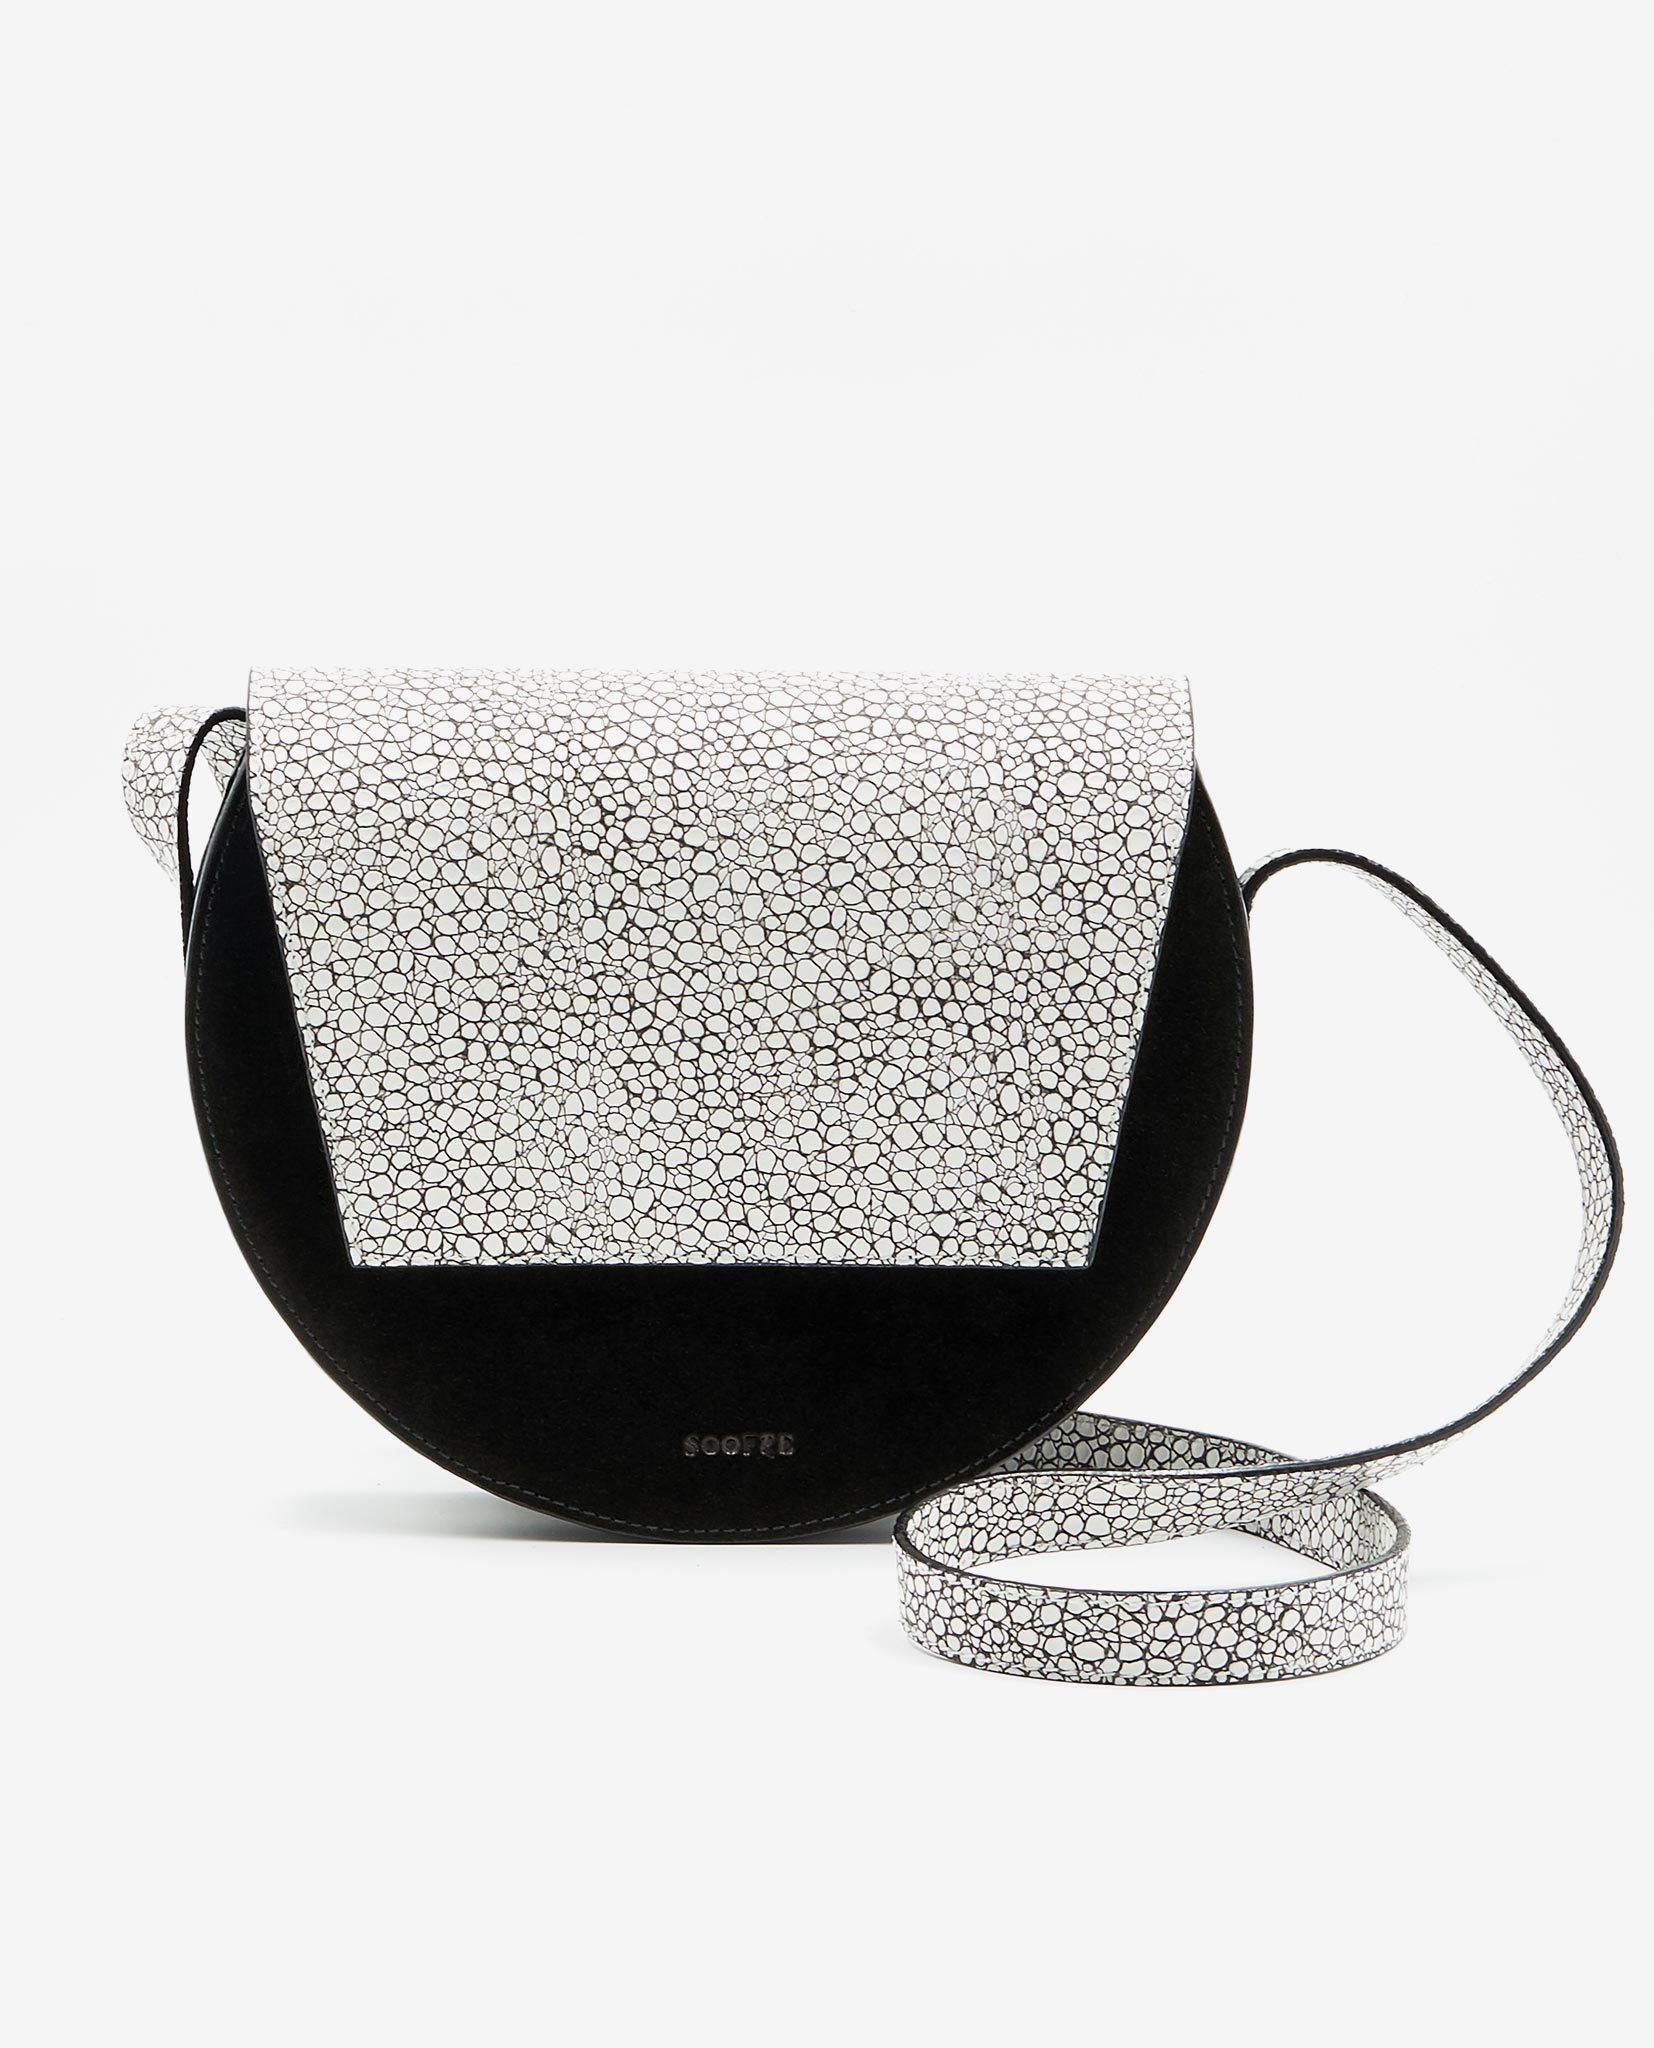 SOOFRE-Berlin-unique-Crossbody-Purse-mini-croco-white-black-FRONT